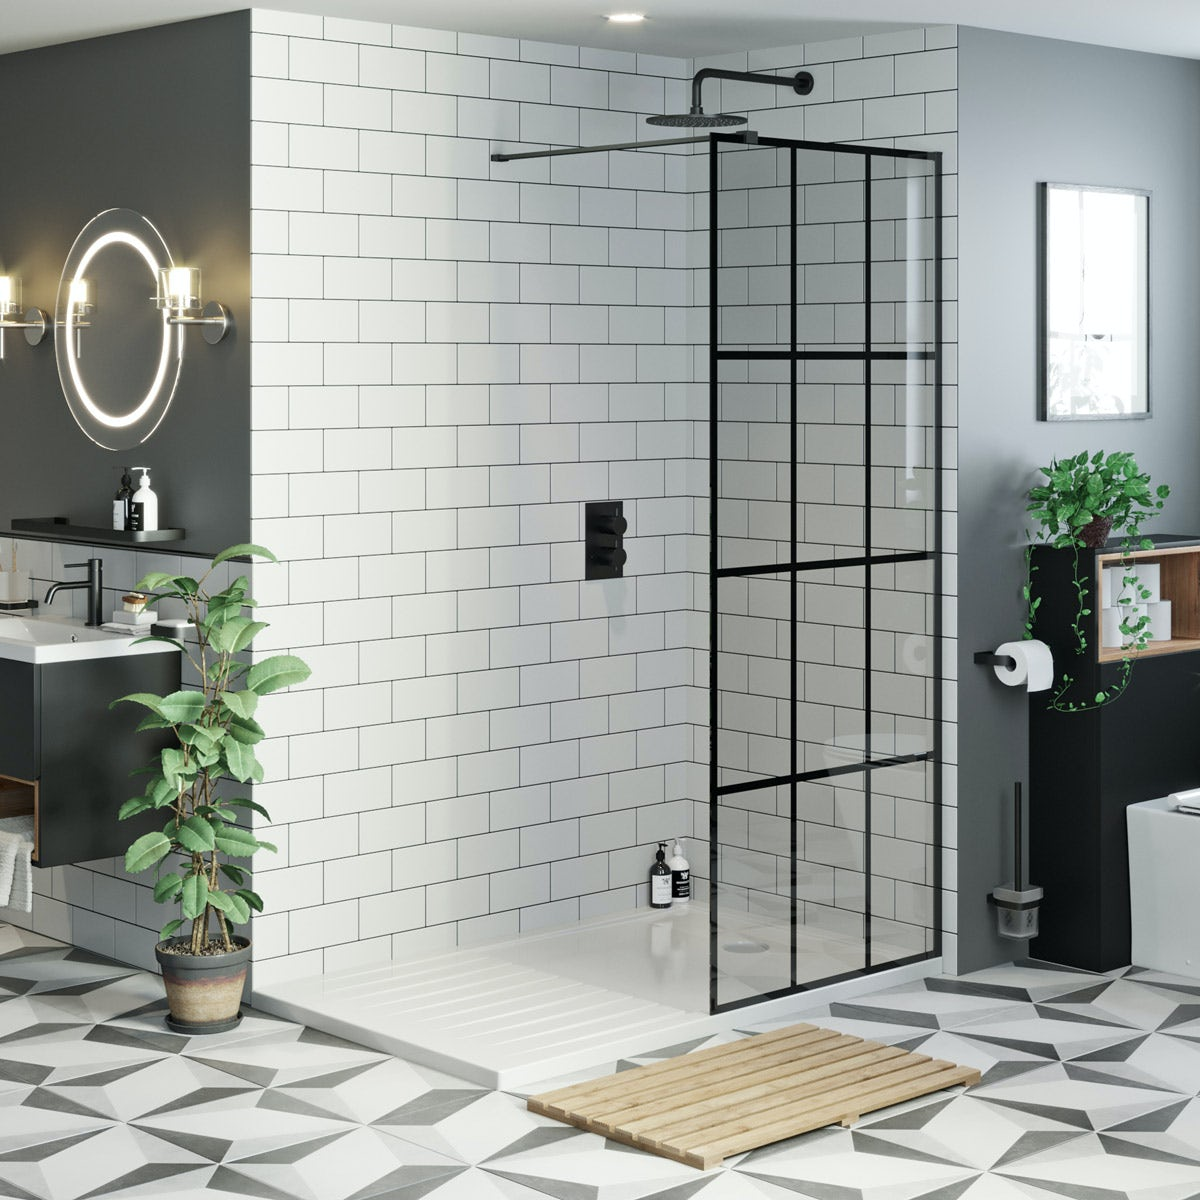 Mode 8mm Black Framed Panel With Walk In Shower Tray